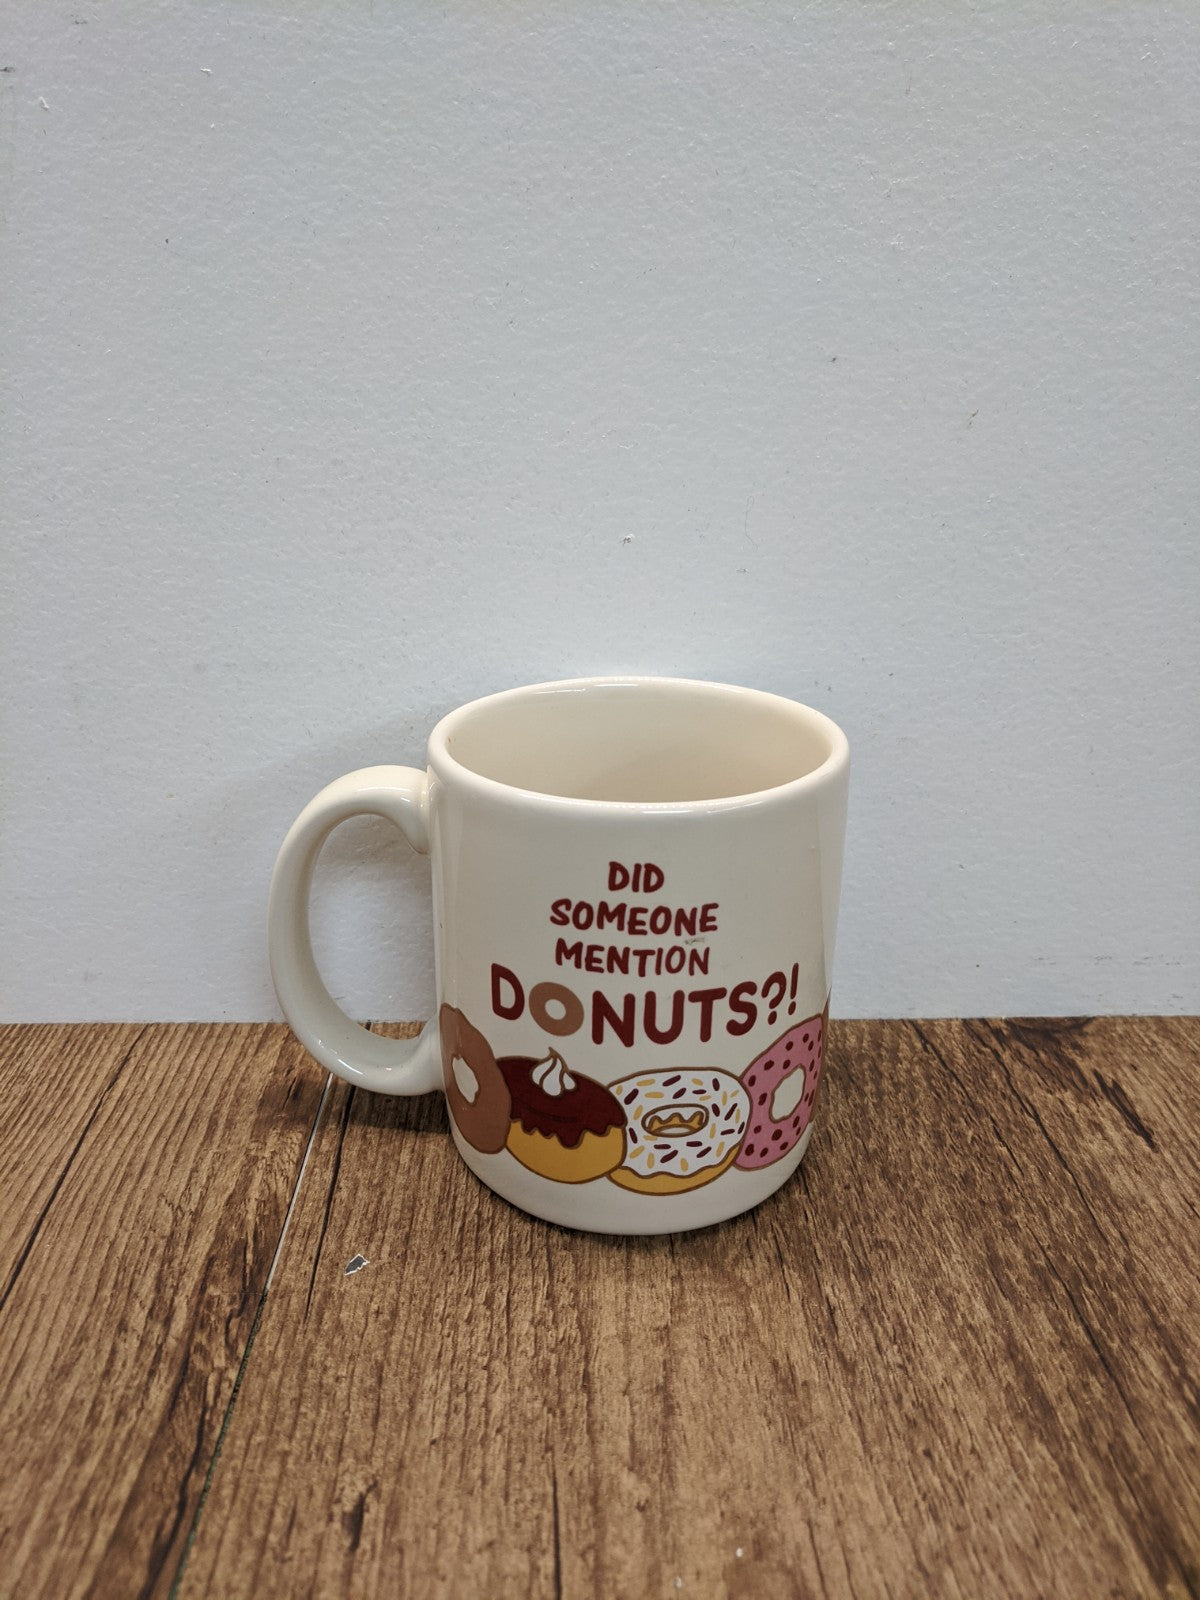 """Did Someone Mention Donuts?!"" Mug"